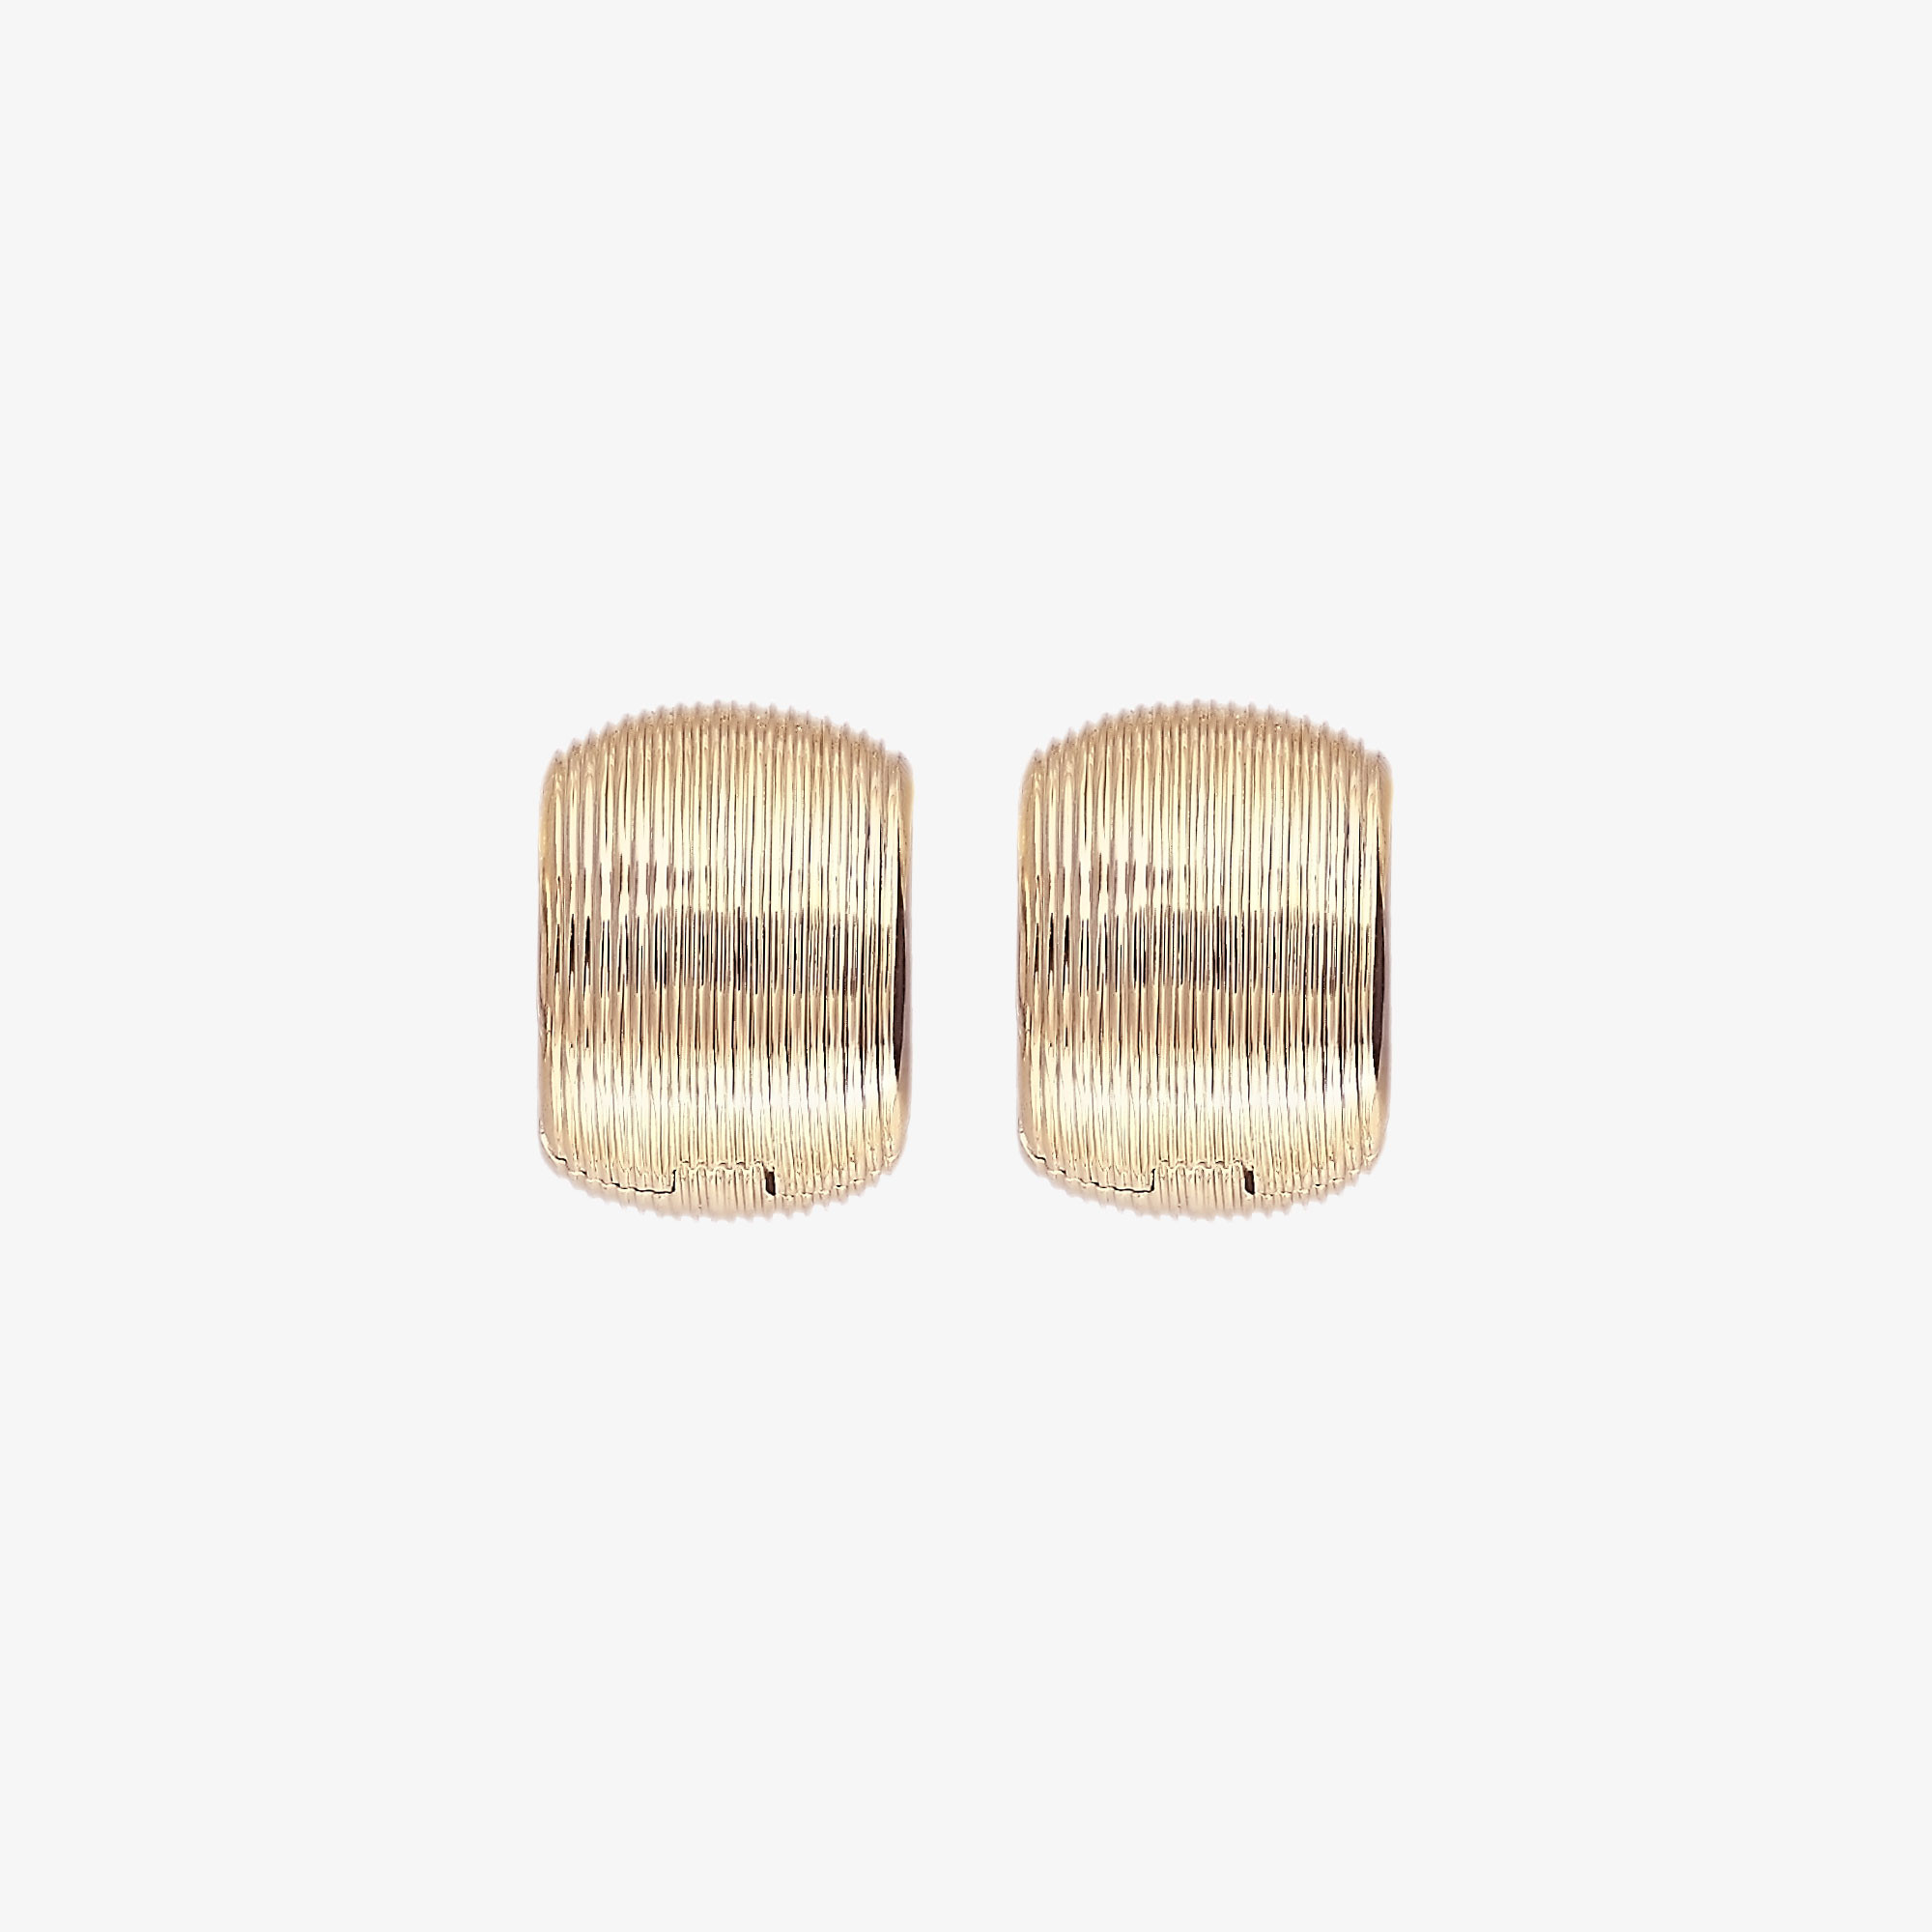 Essenza earrings